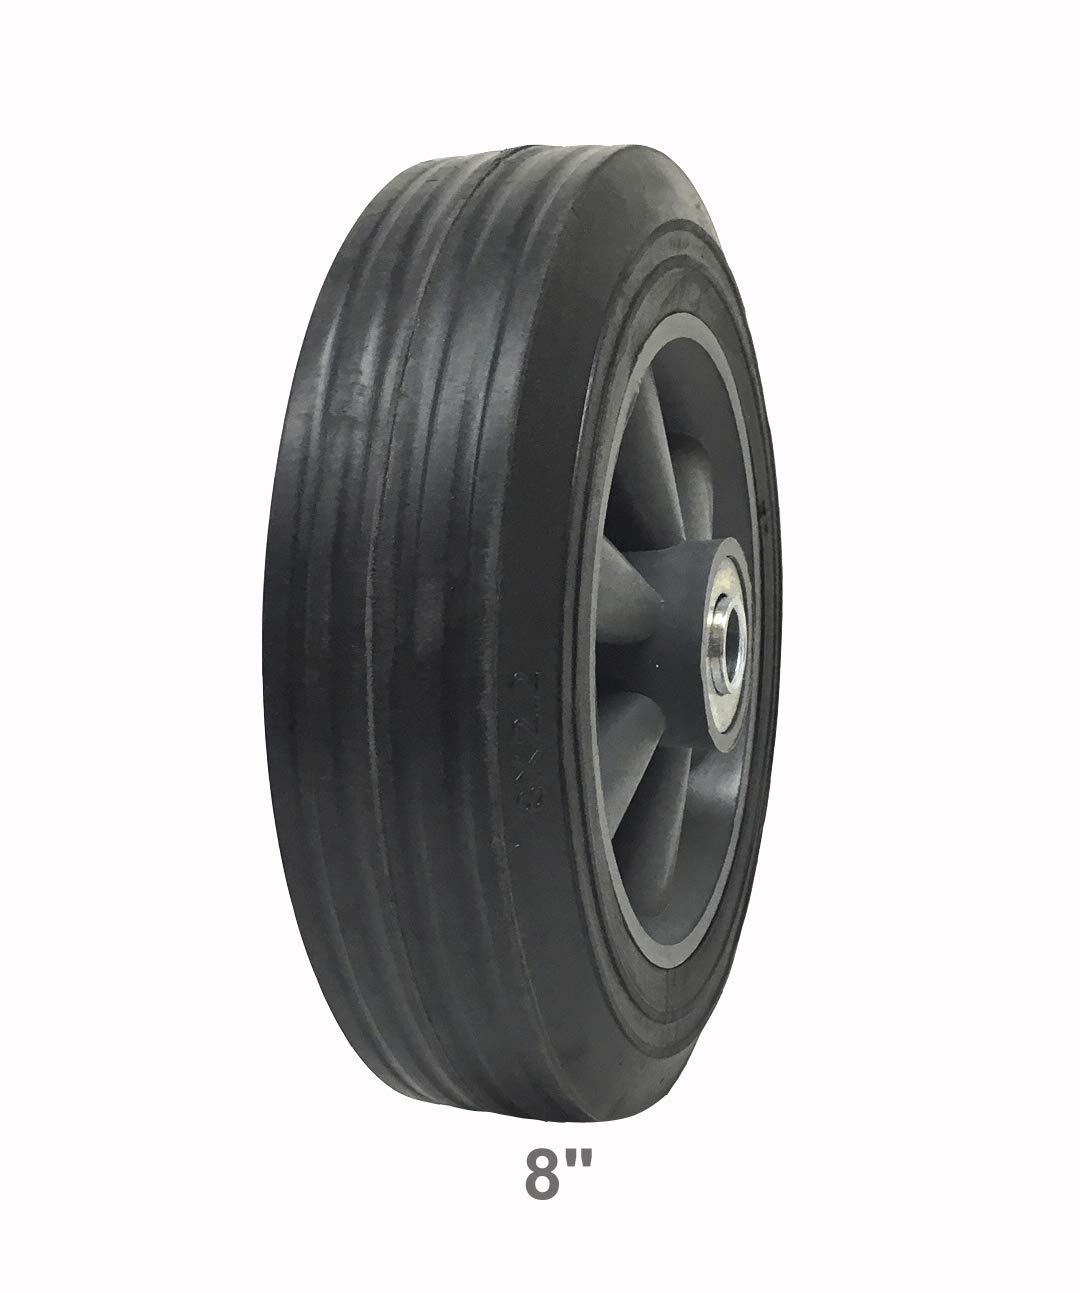 1 Pack Solid Rubber Flat Free Tire 8 x 2.2 Hand Truck Wheel – 2 5 8 Offset Hub – 5 8 Axle 150 lbs Capacity